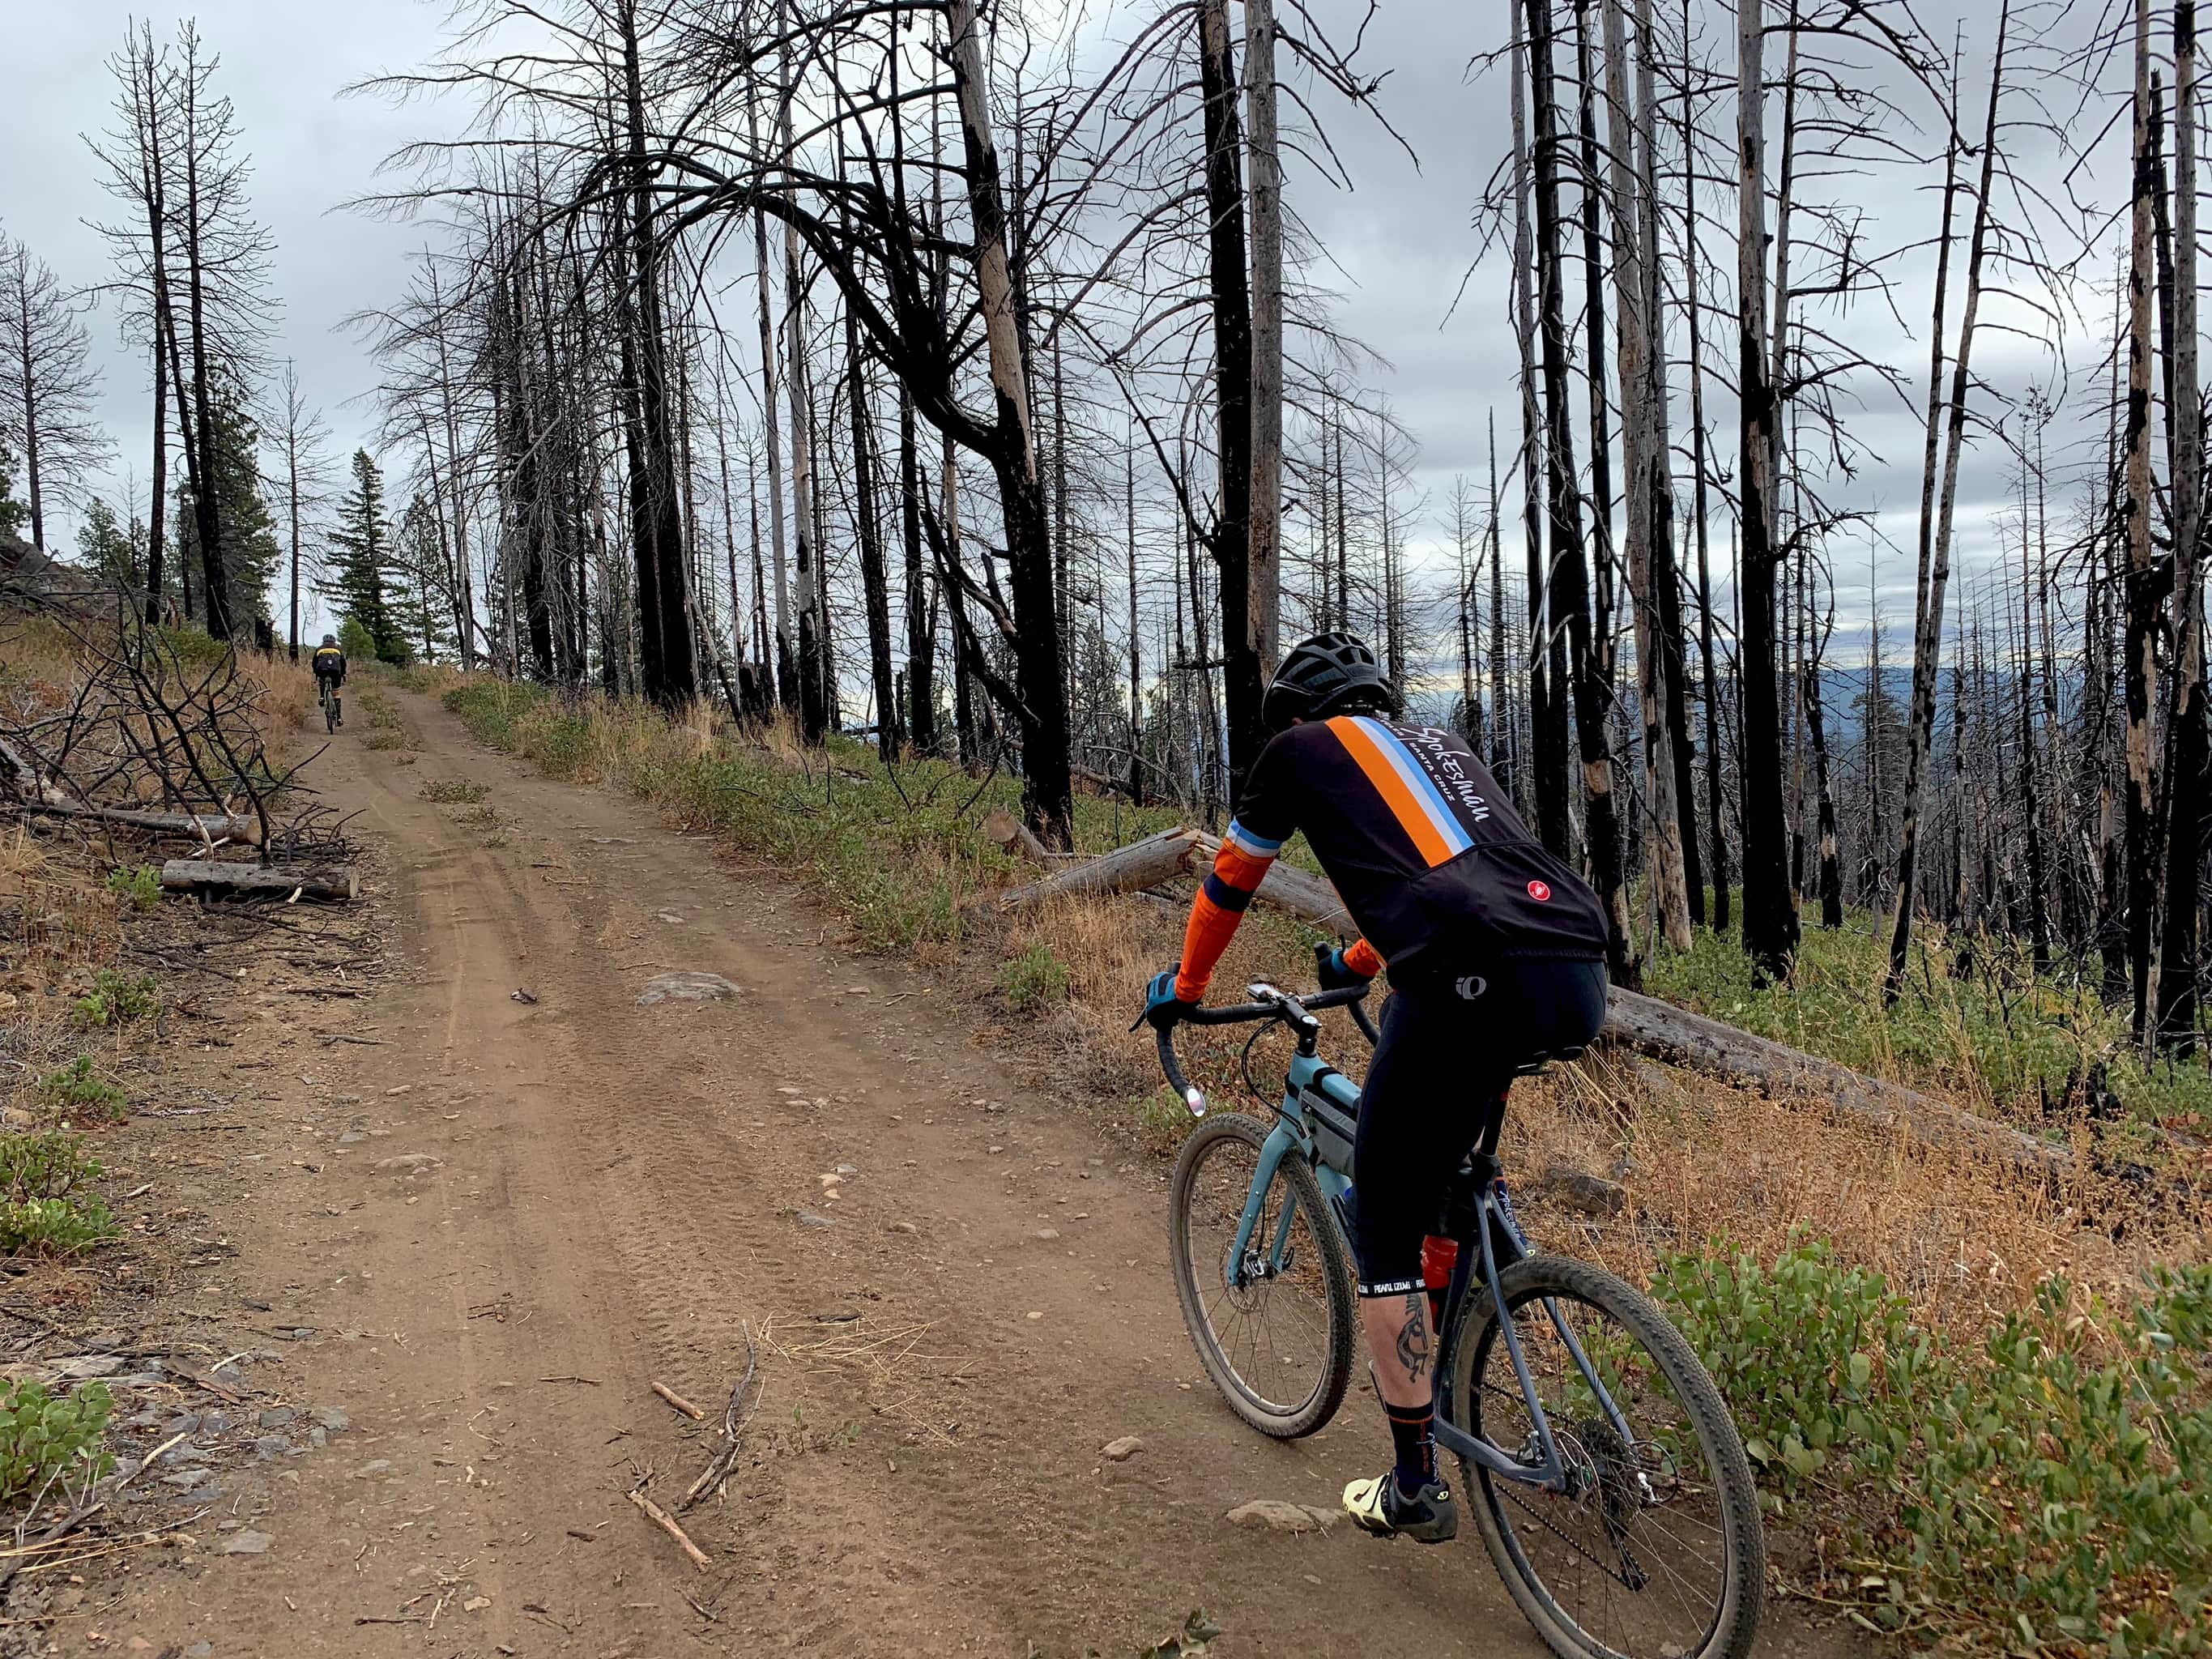 Gravel bike rider on primitive forest service road with burned trees and views to east.